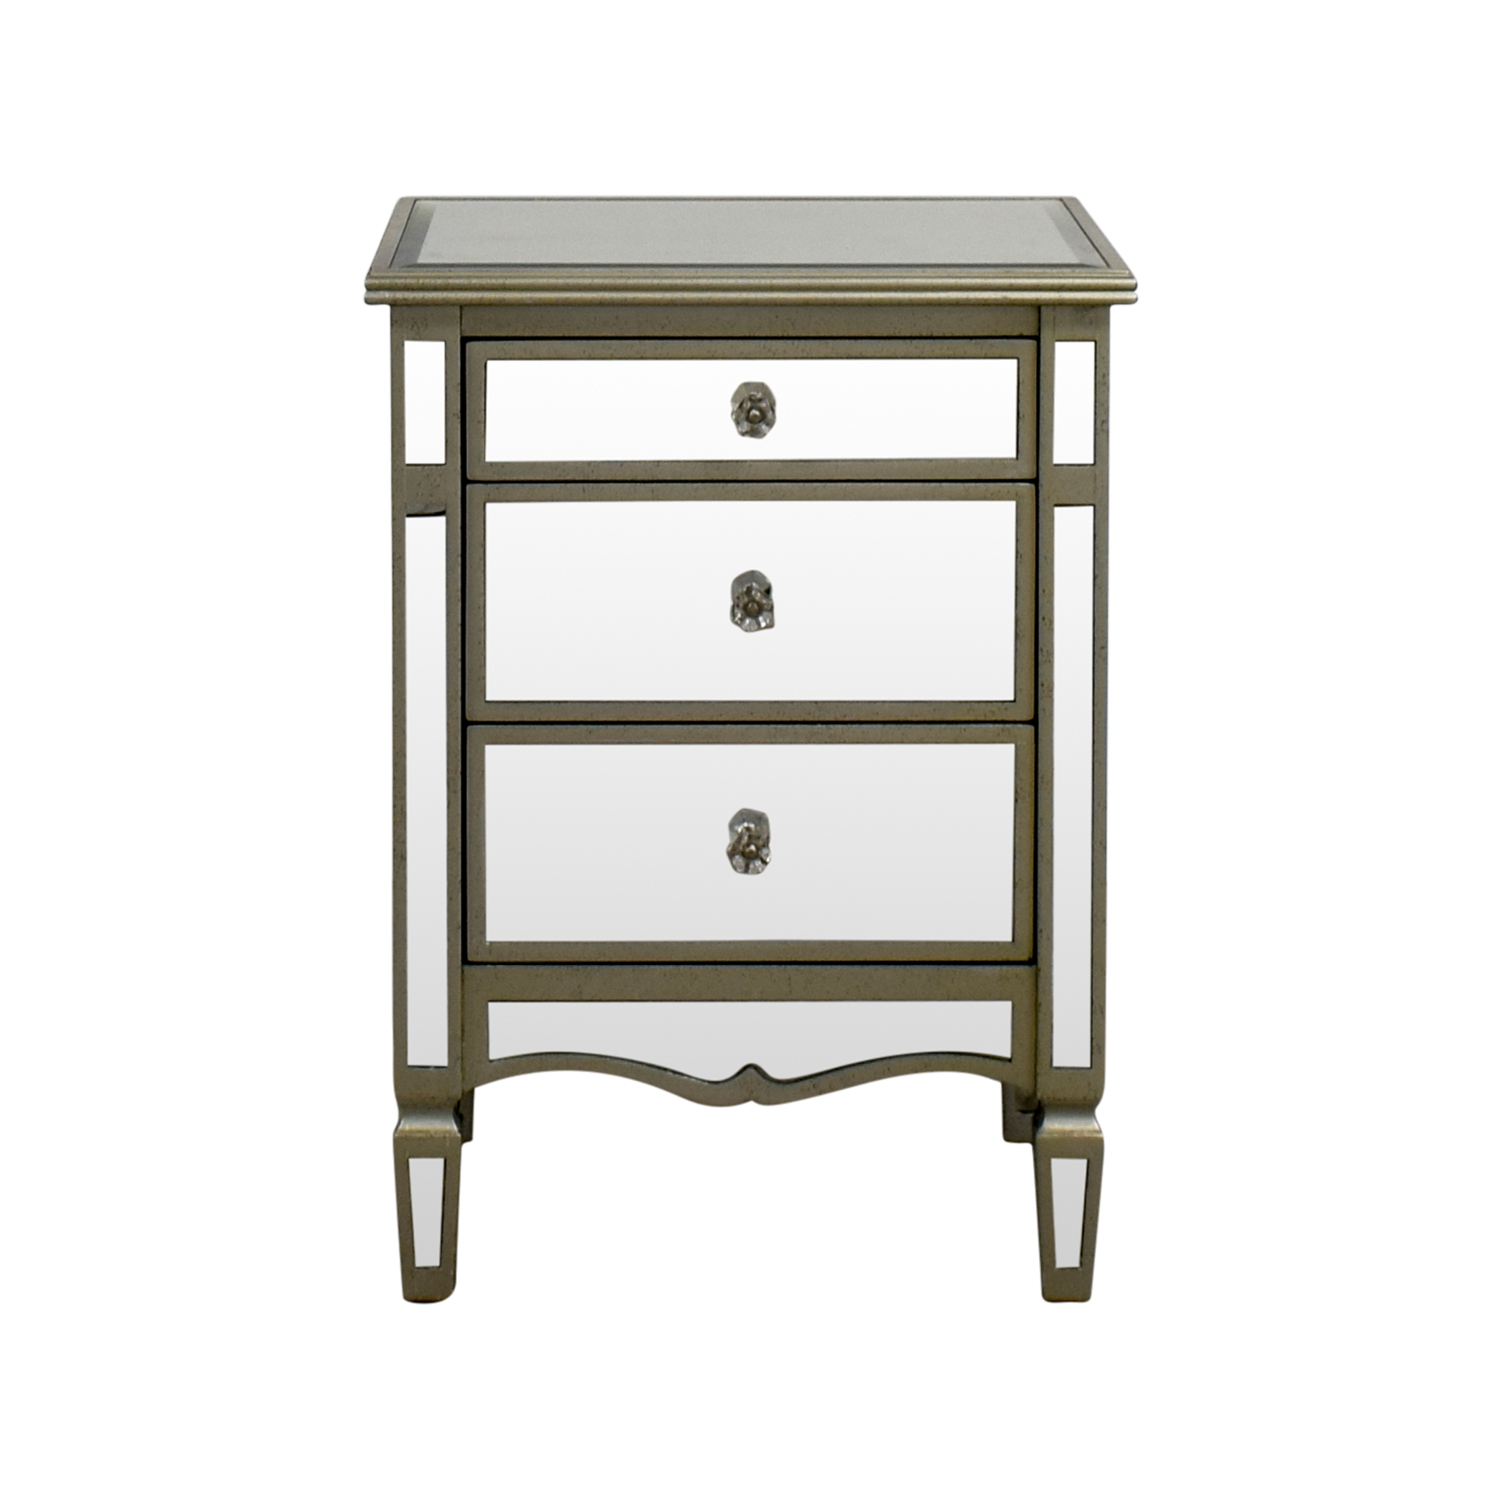 JC Penny JC Penny Mirrored Three-Drawer Nightstand for sale